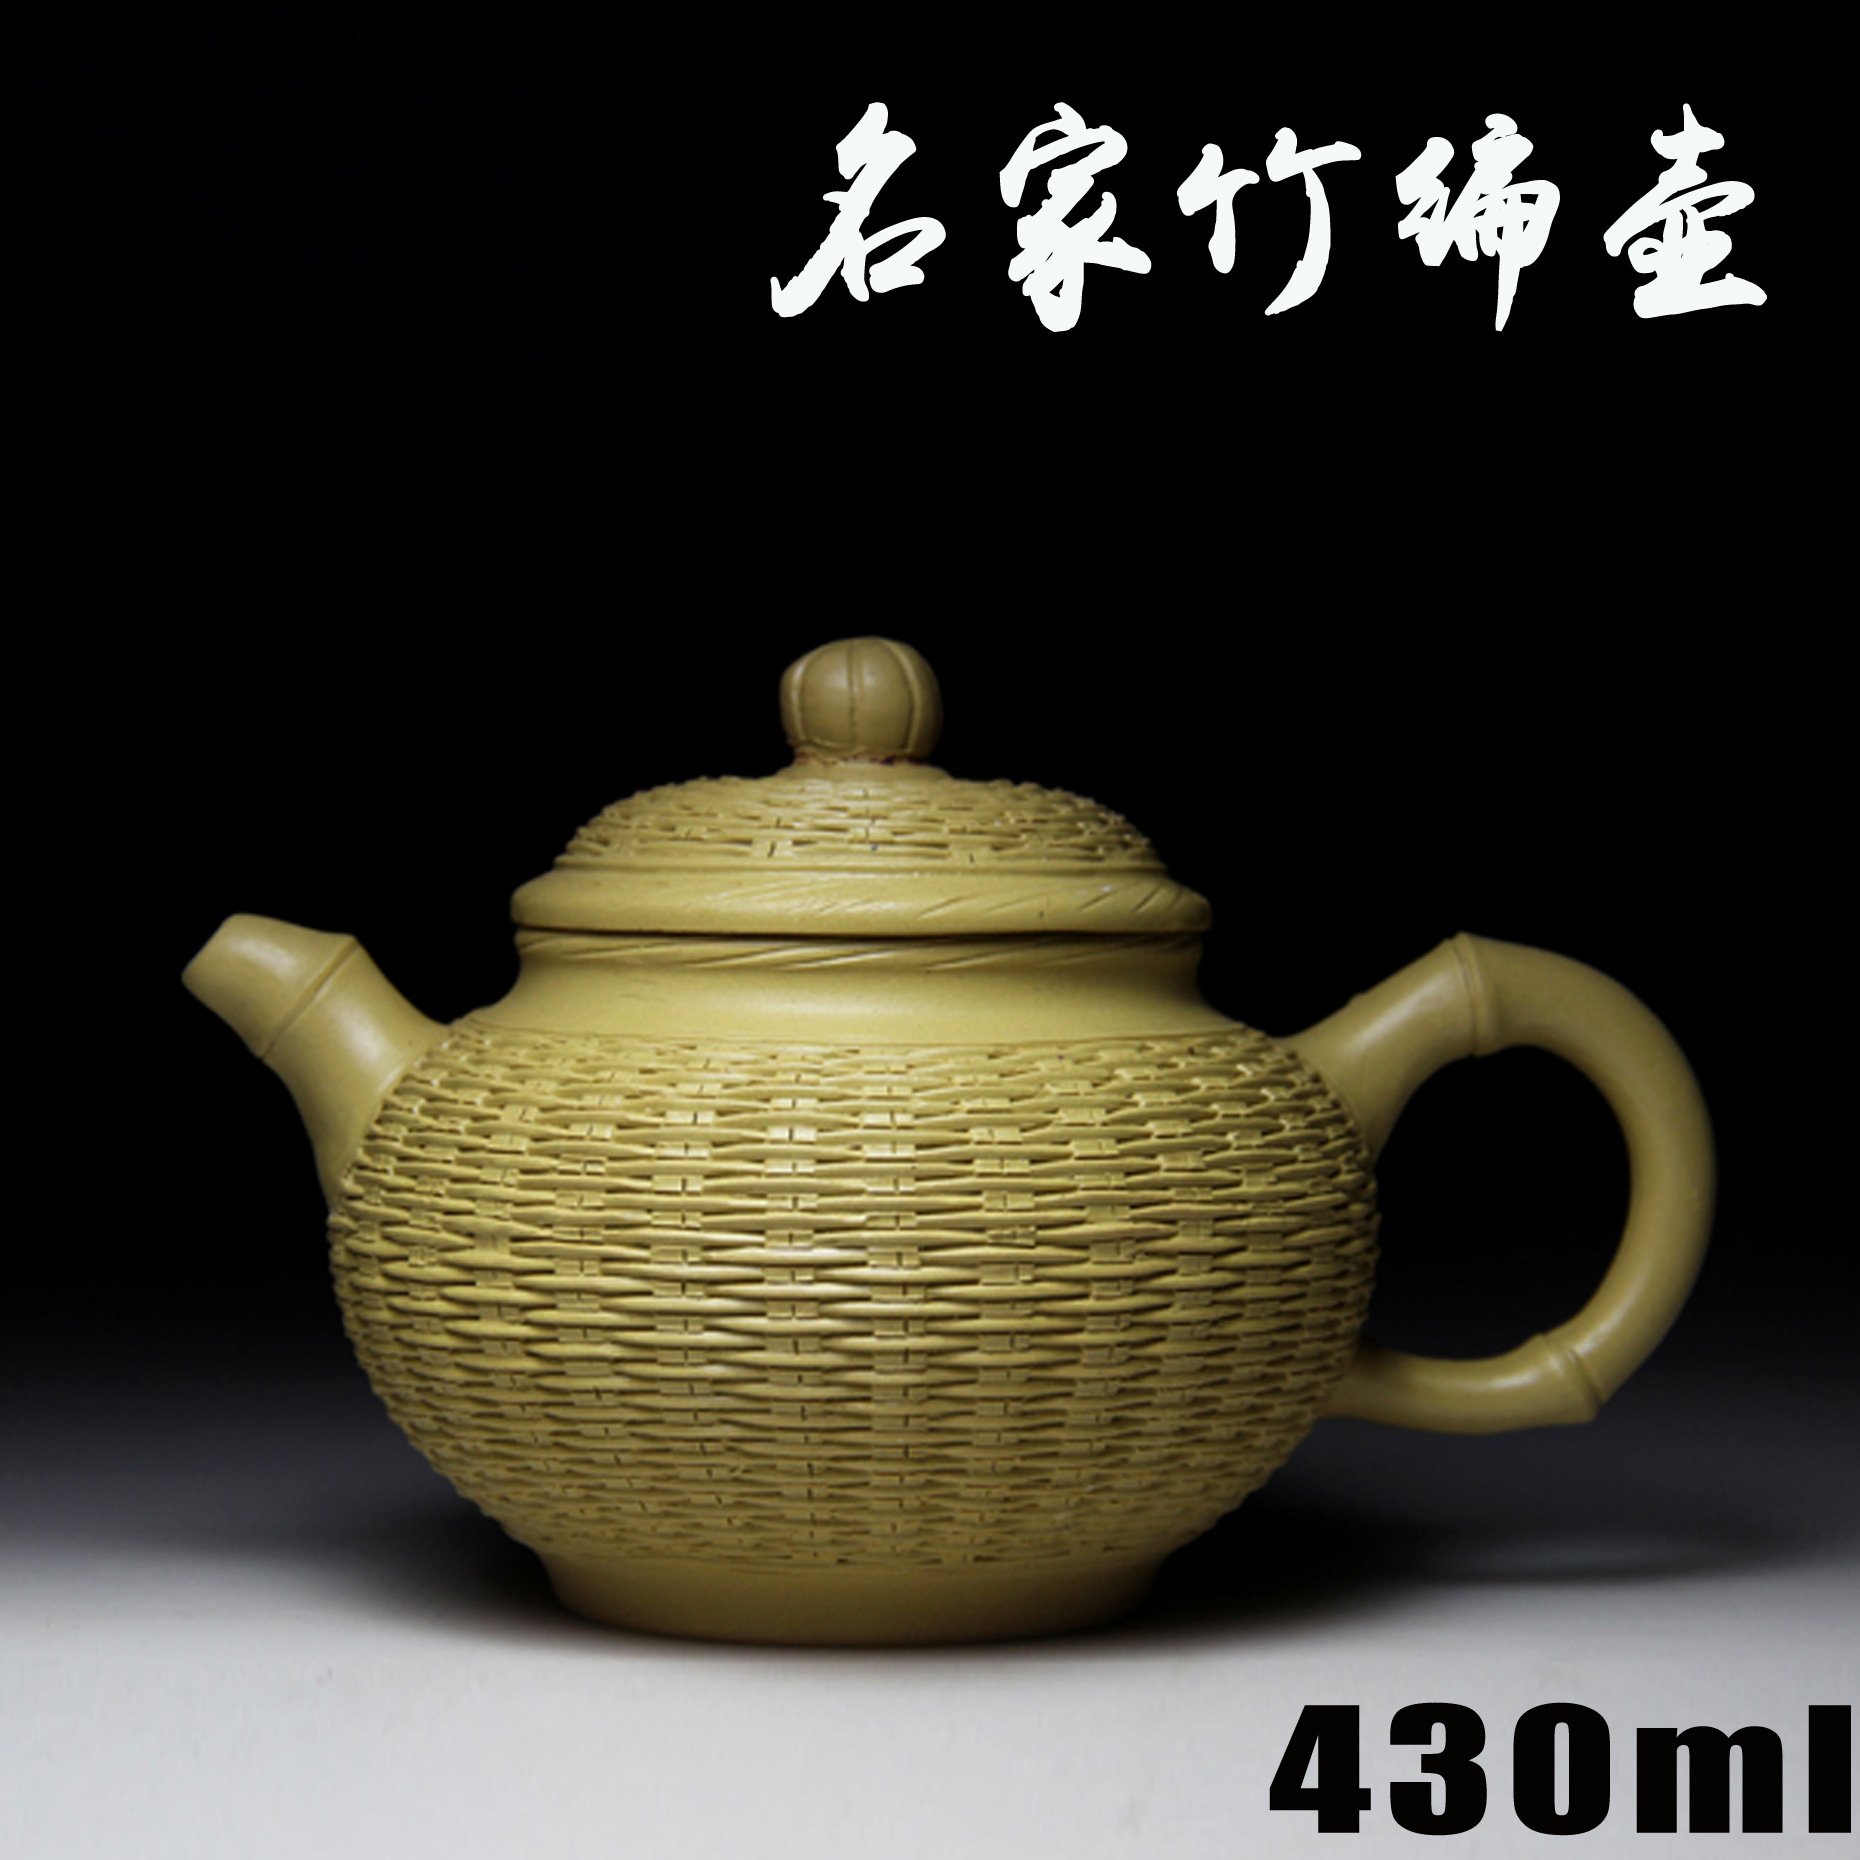 519 bamboo pot authentic Yixing teapot famous handmade teapot mud famous Crafts wholesale ore section